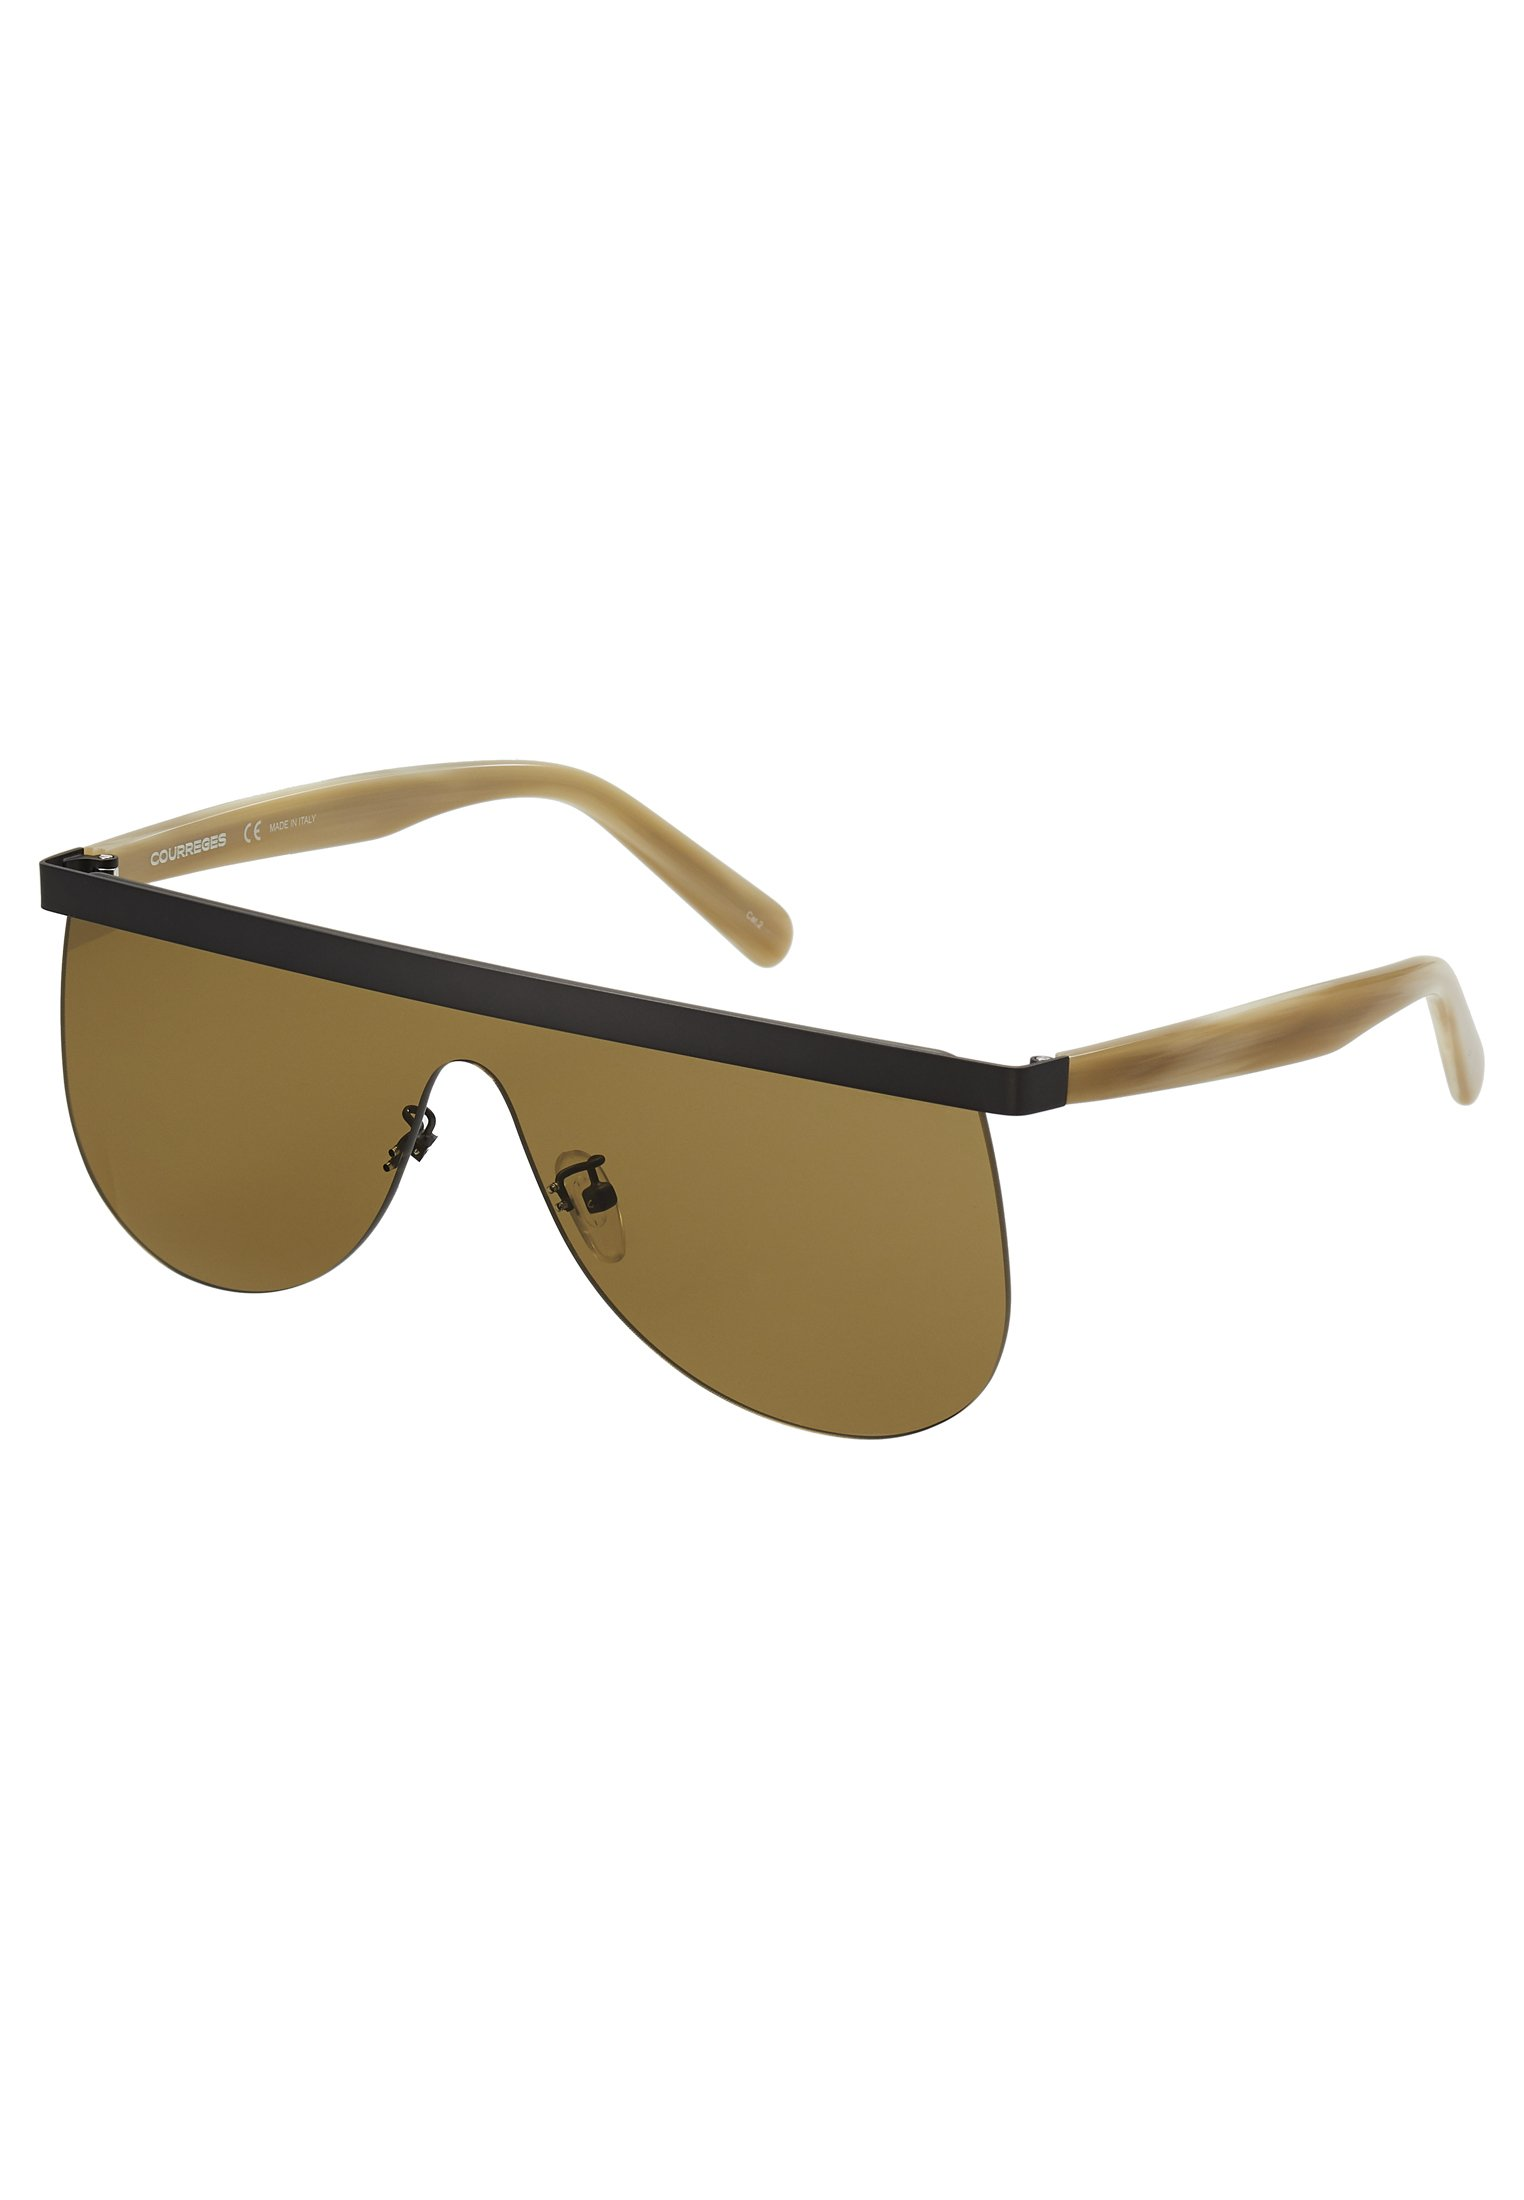 Courreges Sonnenbrille - Ruthenium/beige-brown/braun